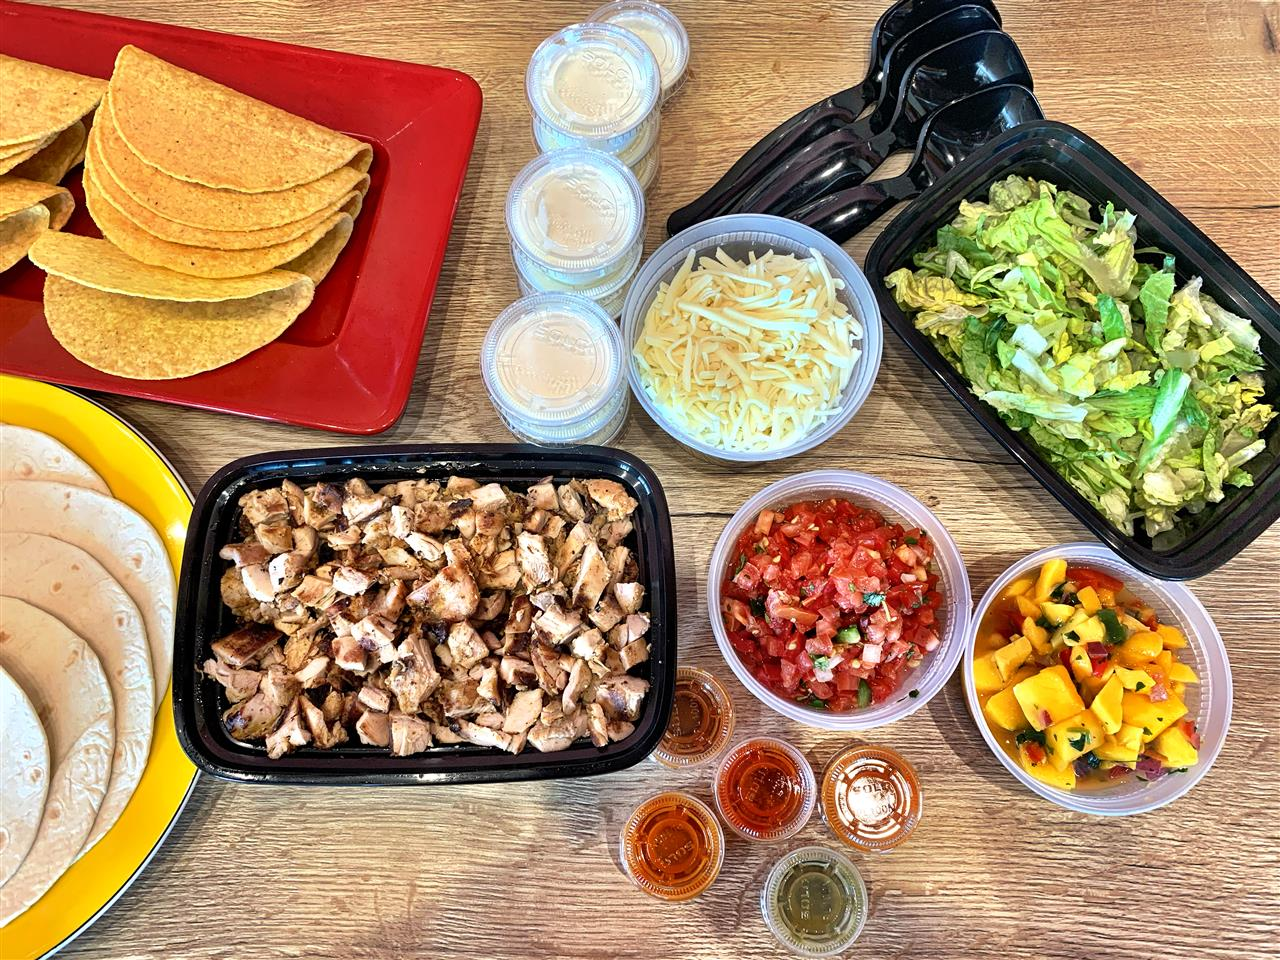 TACO PARTY - BUILD YOUR OWN 12 TACOS